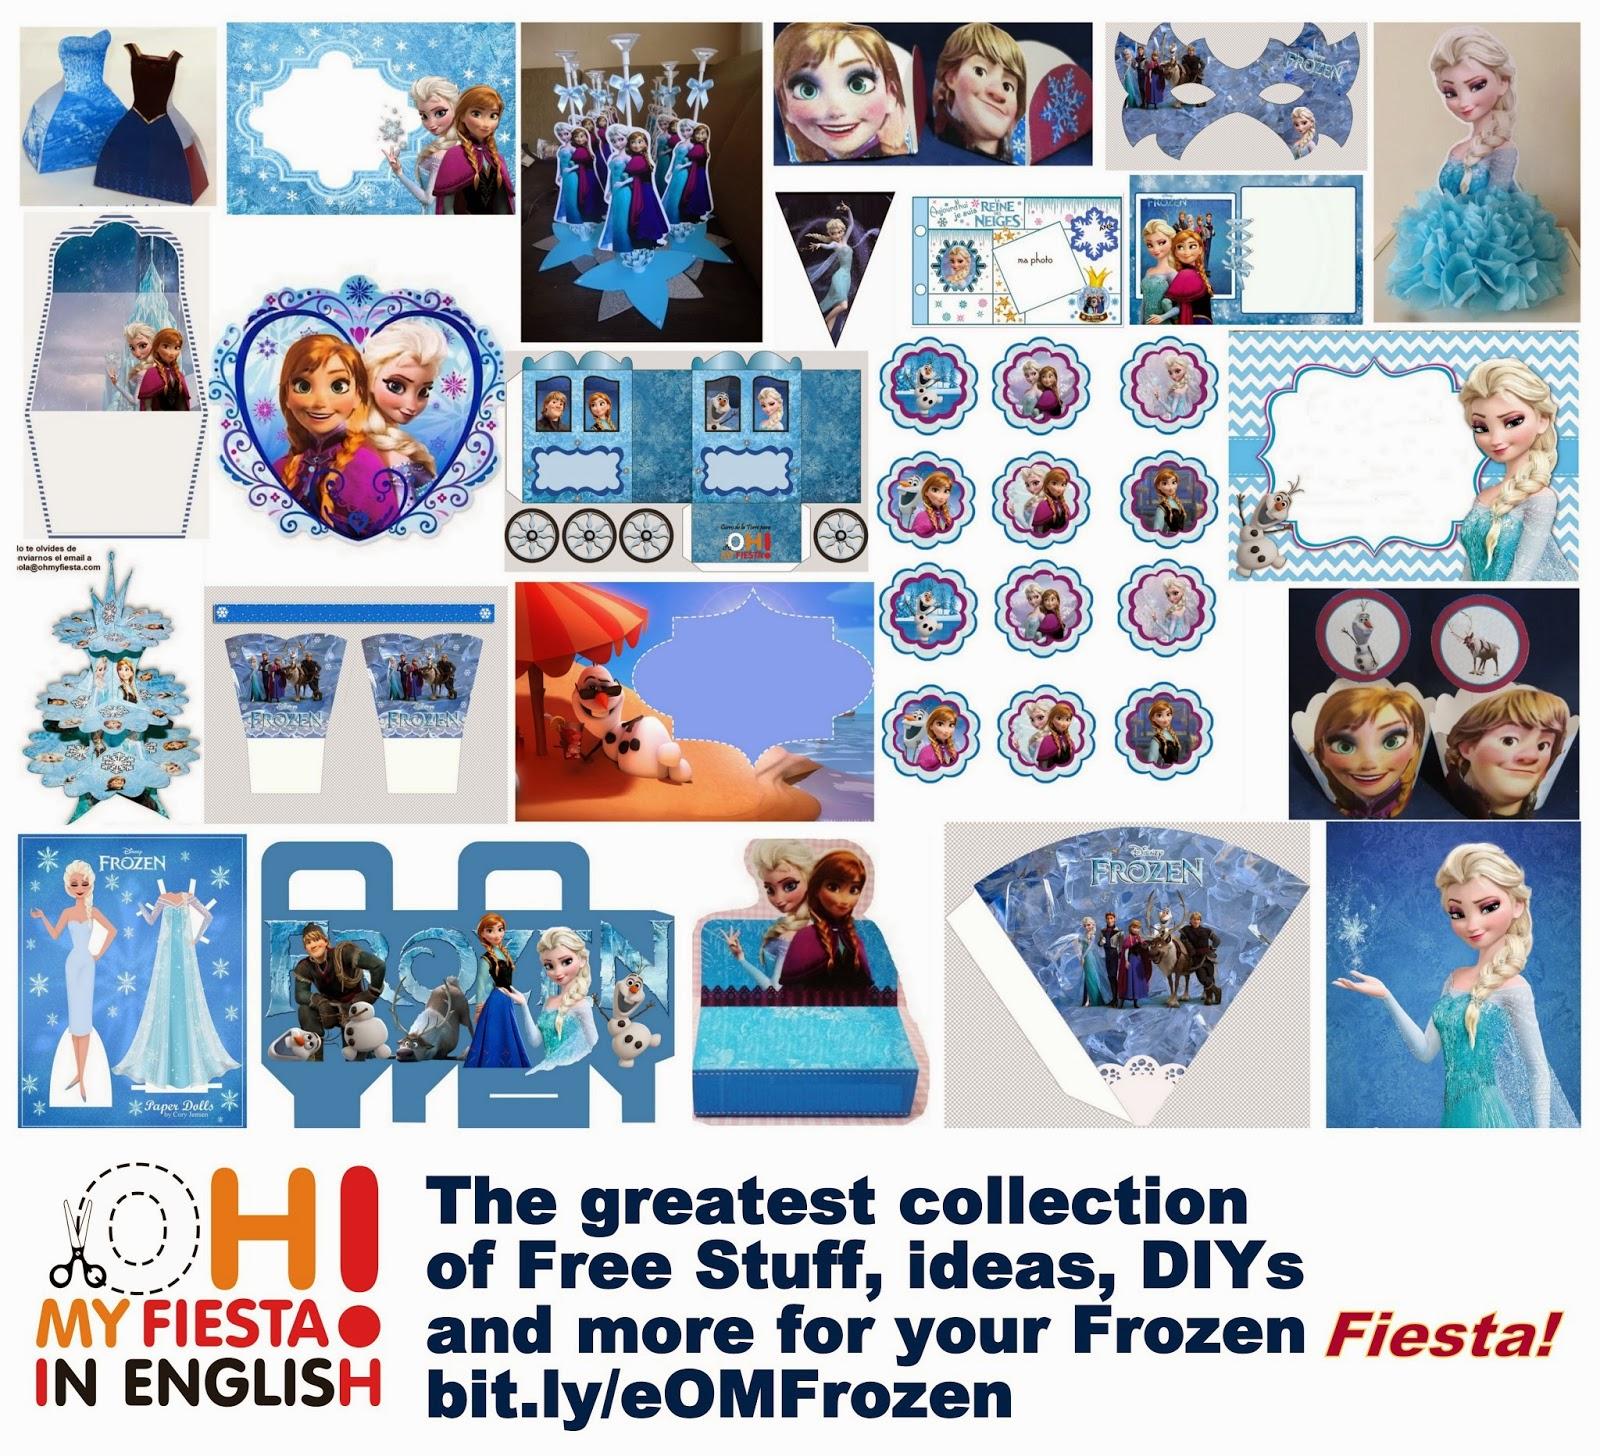 picture regarding Frozen Party Food Labels Free Printable named Free of charge Printable Frozen Labels. - Oh My Fiesta! within just english